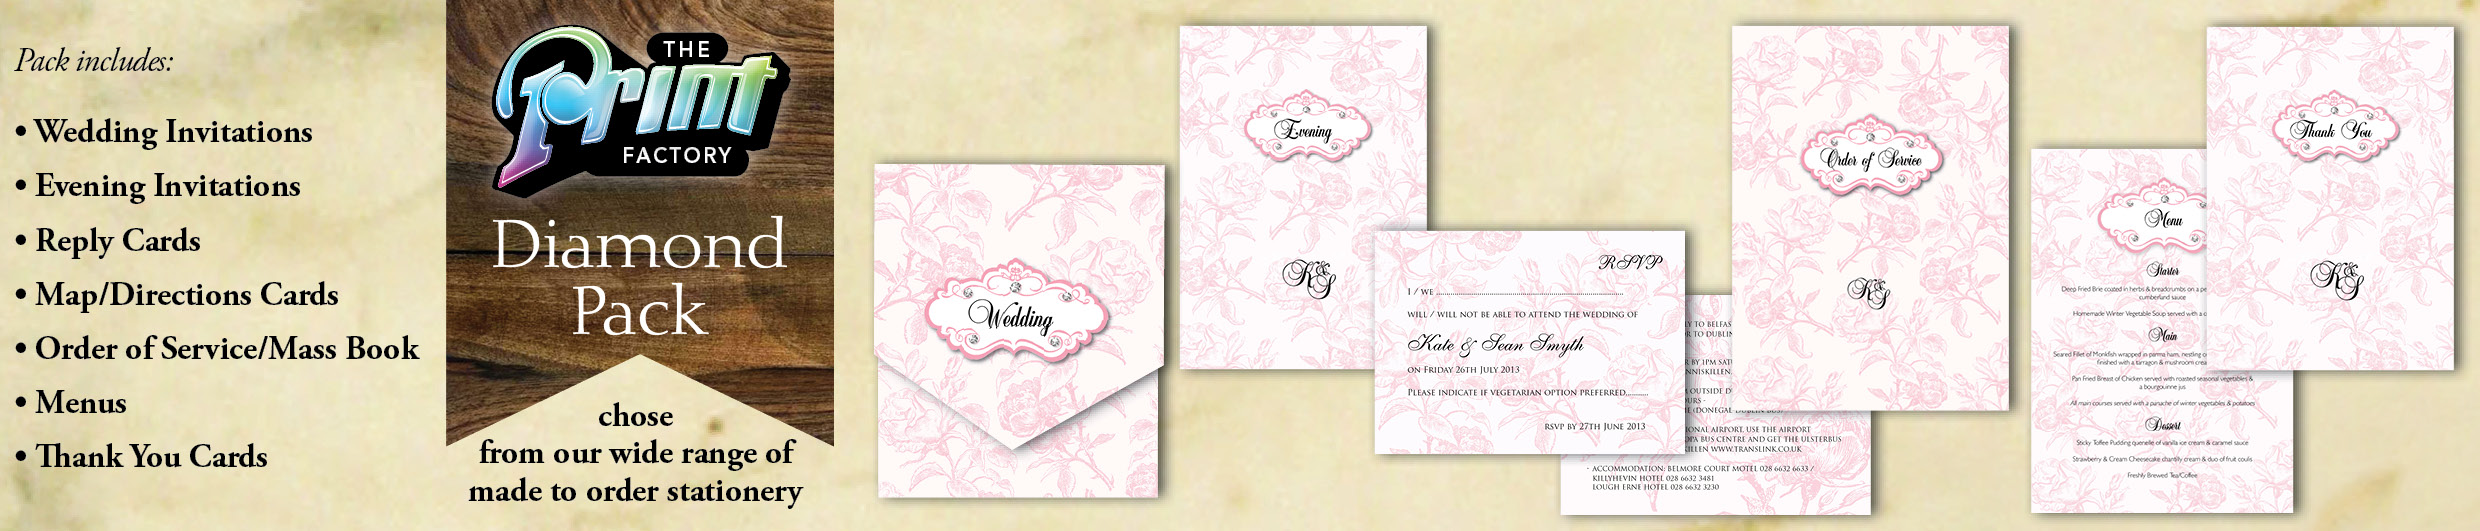 PF Wedding Banners packs5